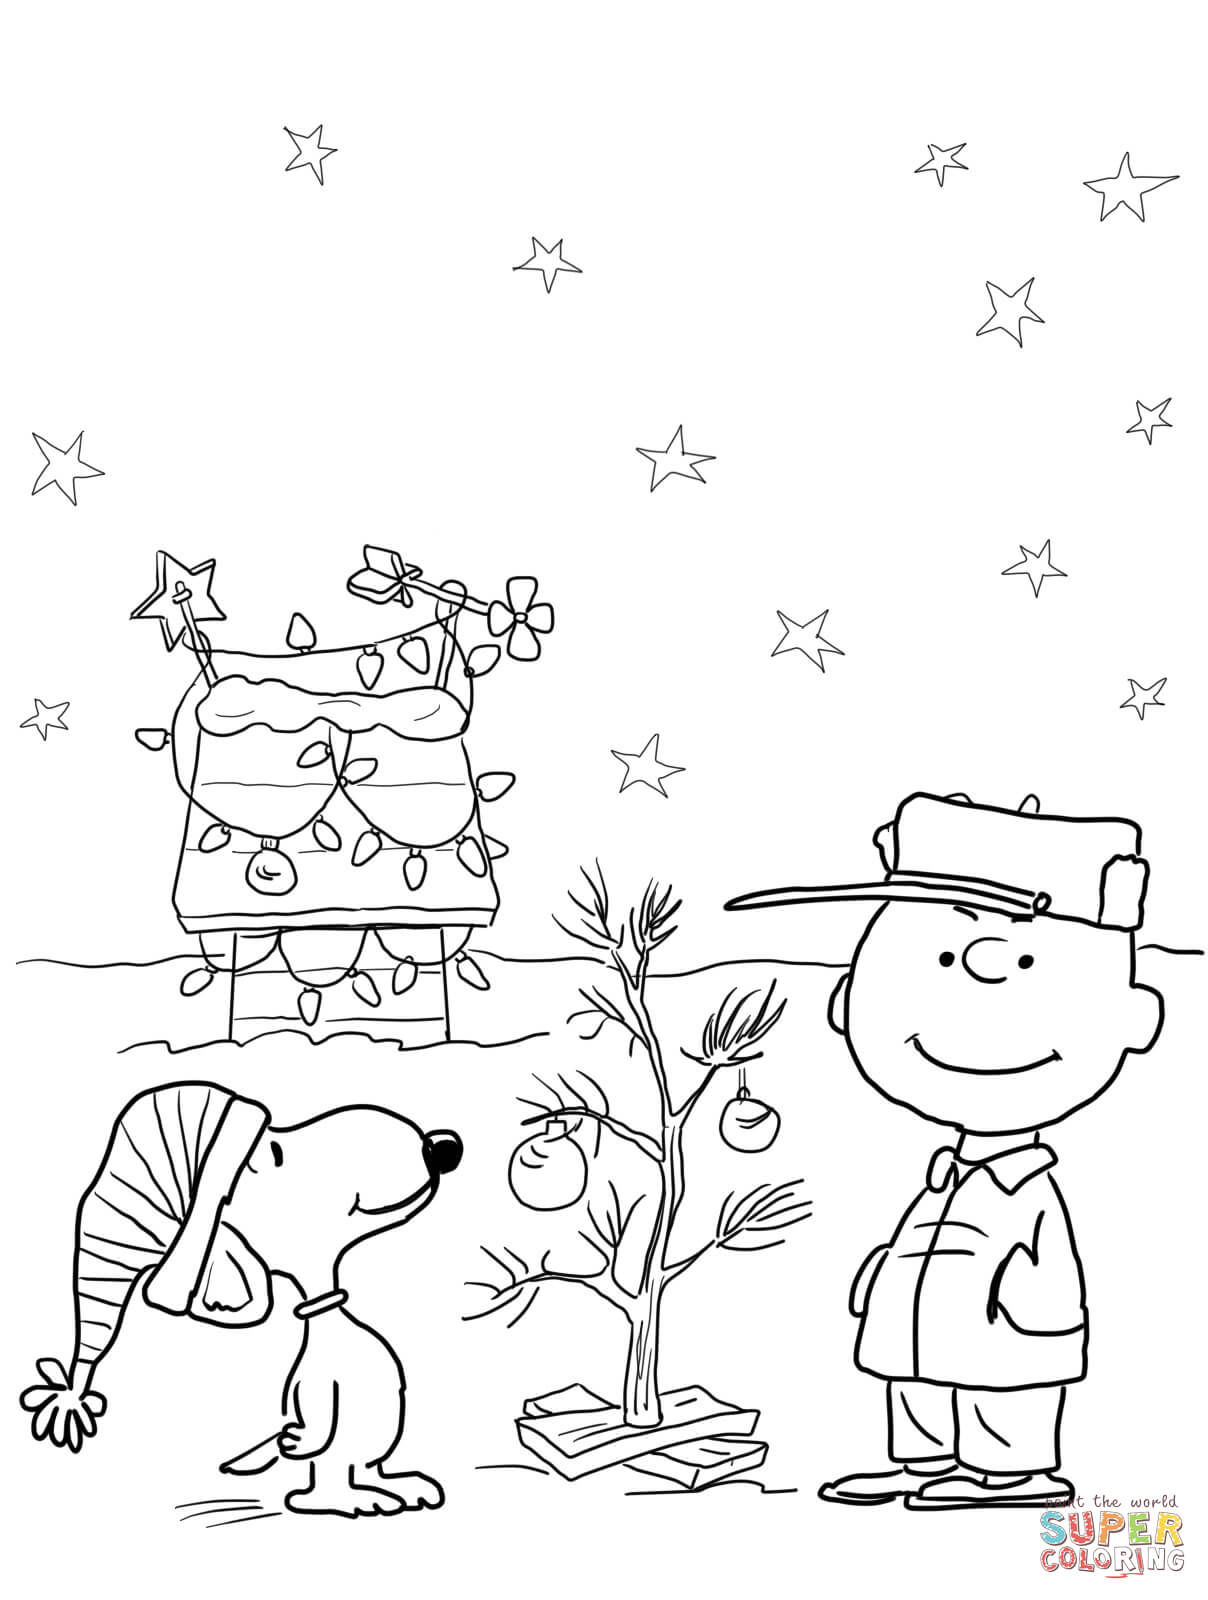 Christmas Coloring Sheets Images With Charlie Brown Page Free Printable Pages